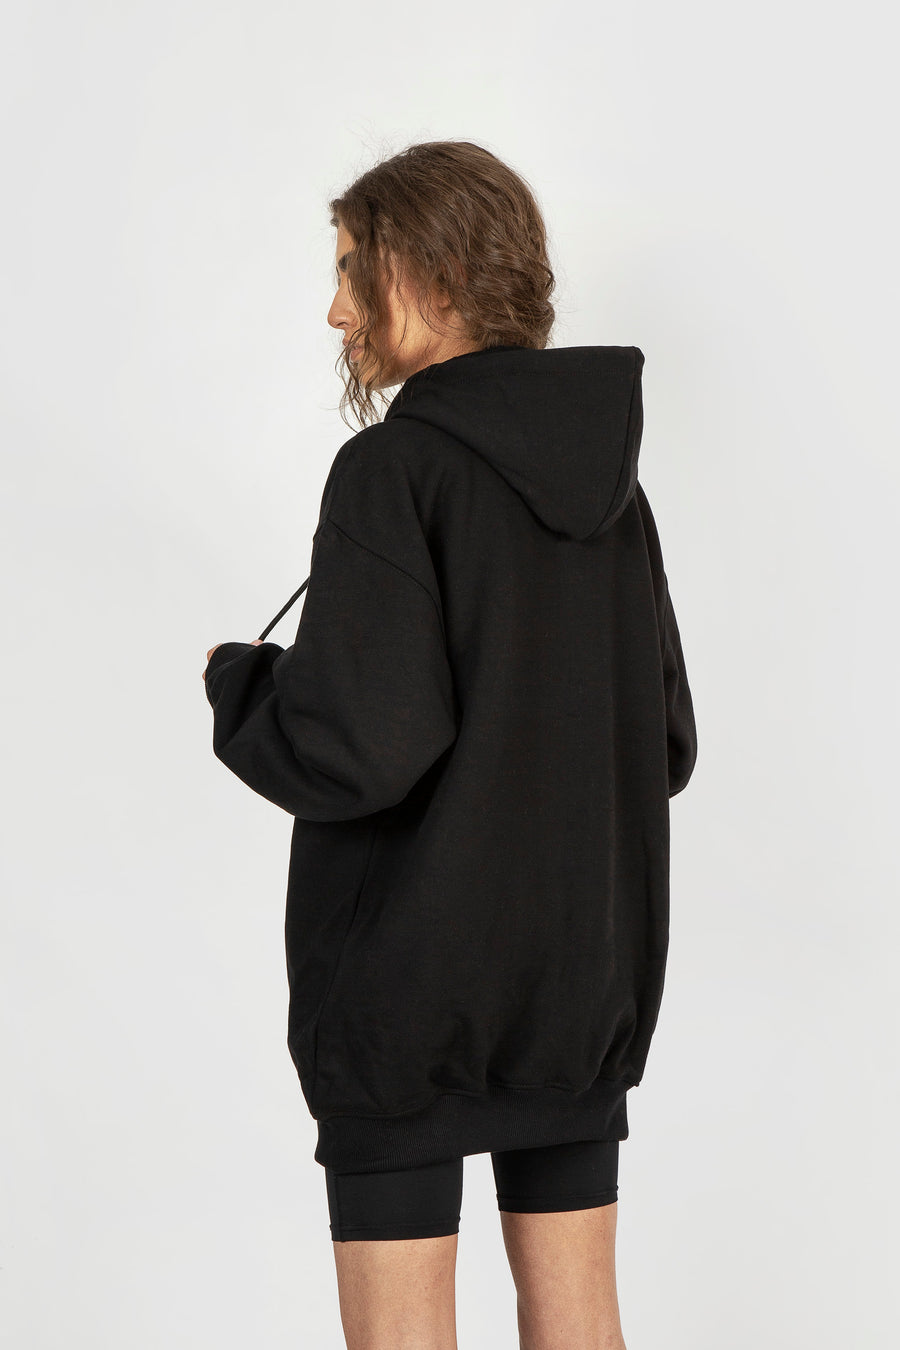 Michael Qajaro Black Jumper